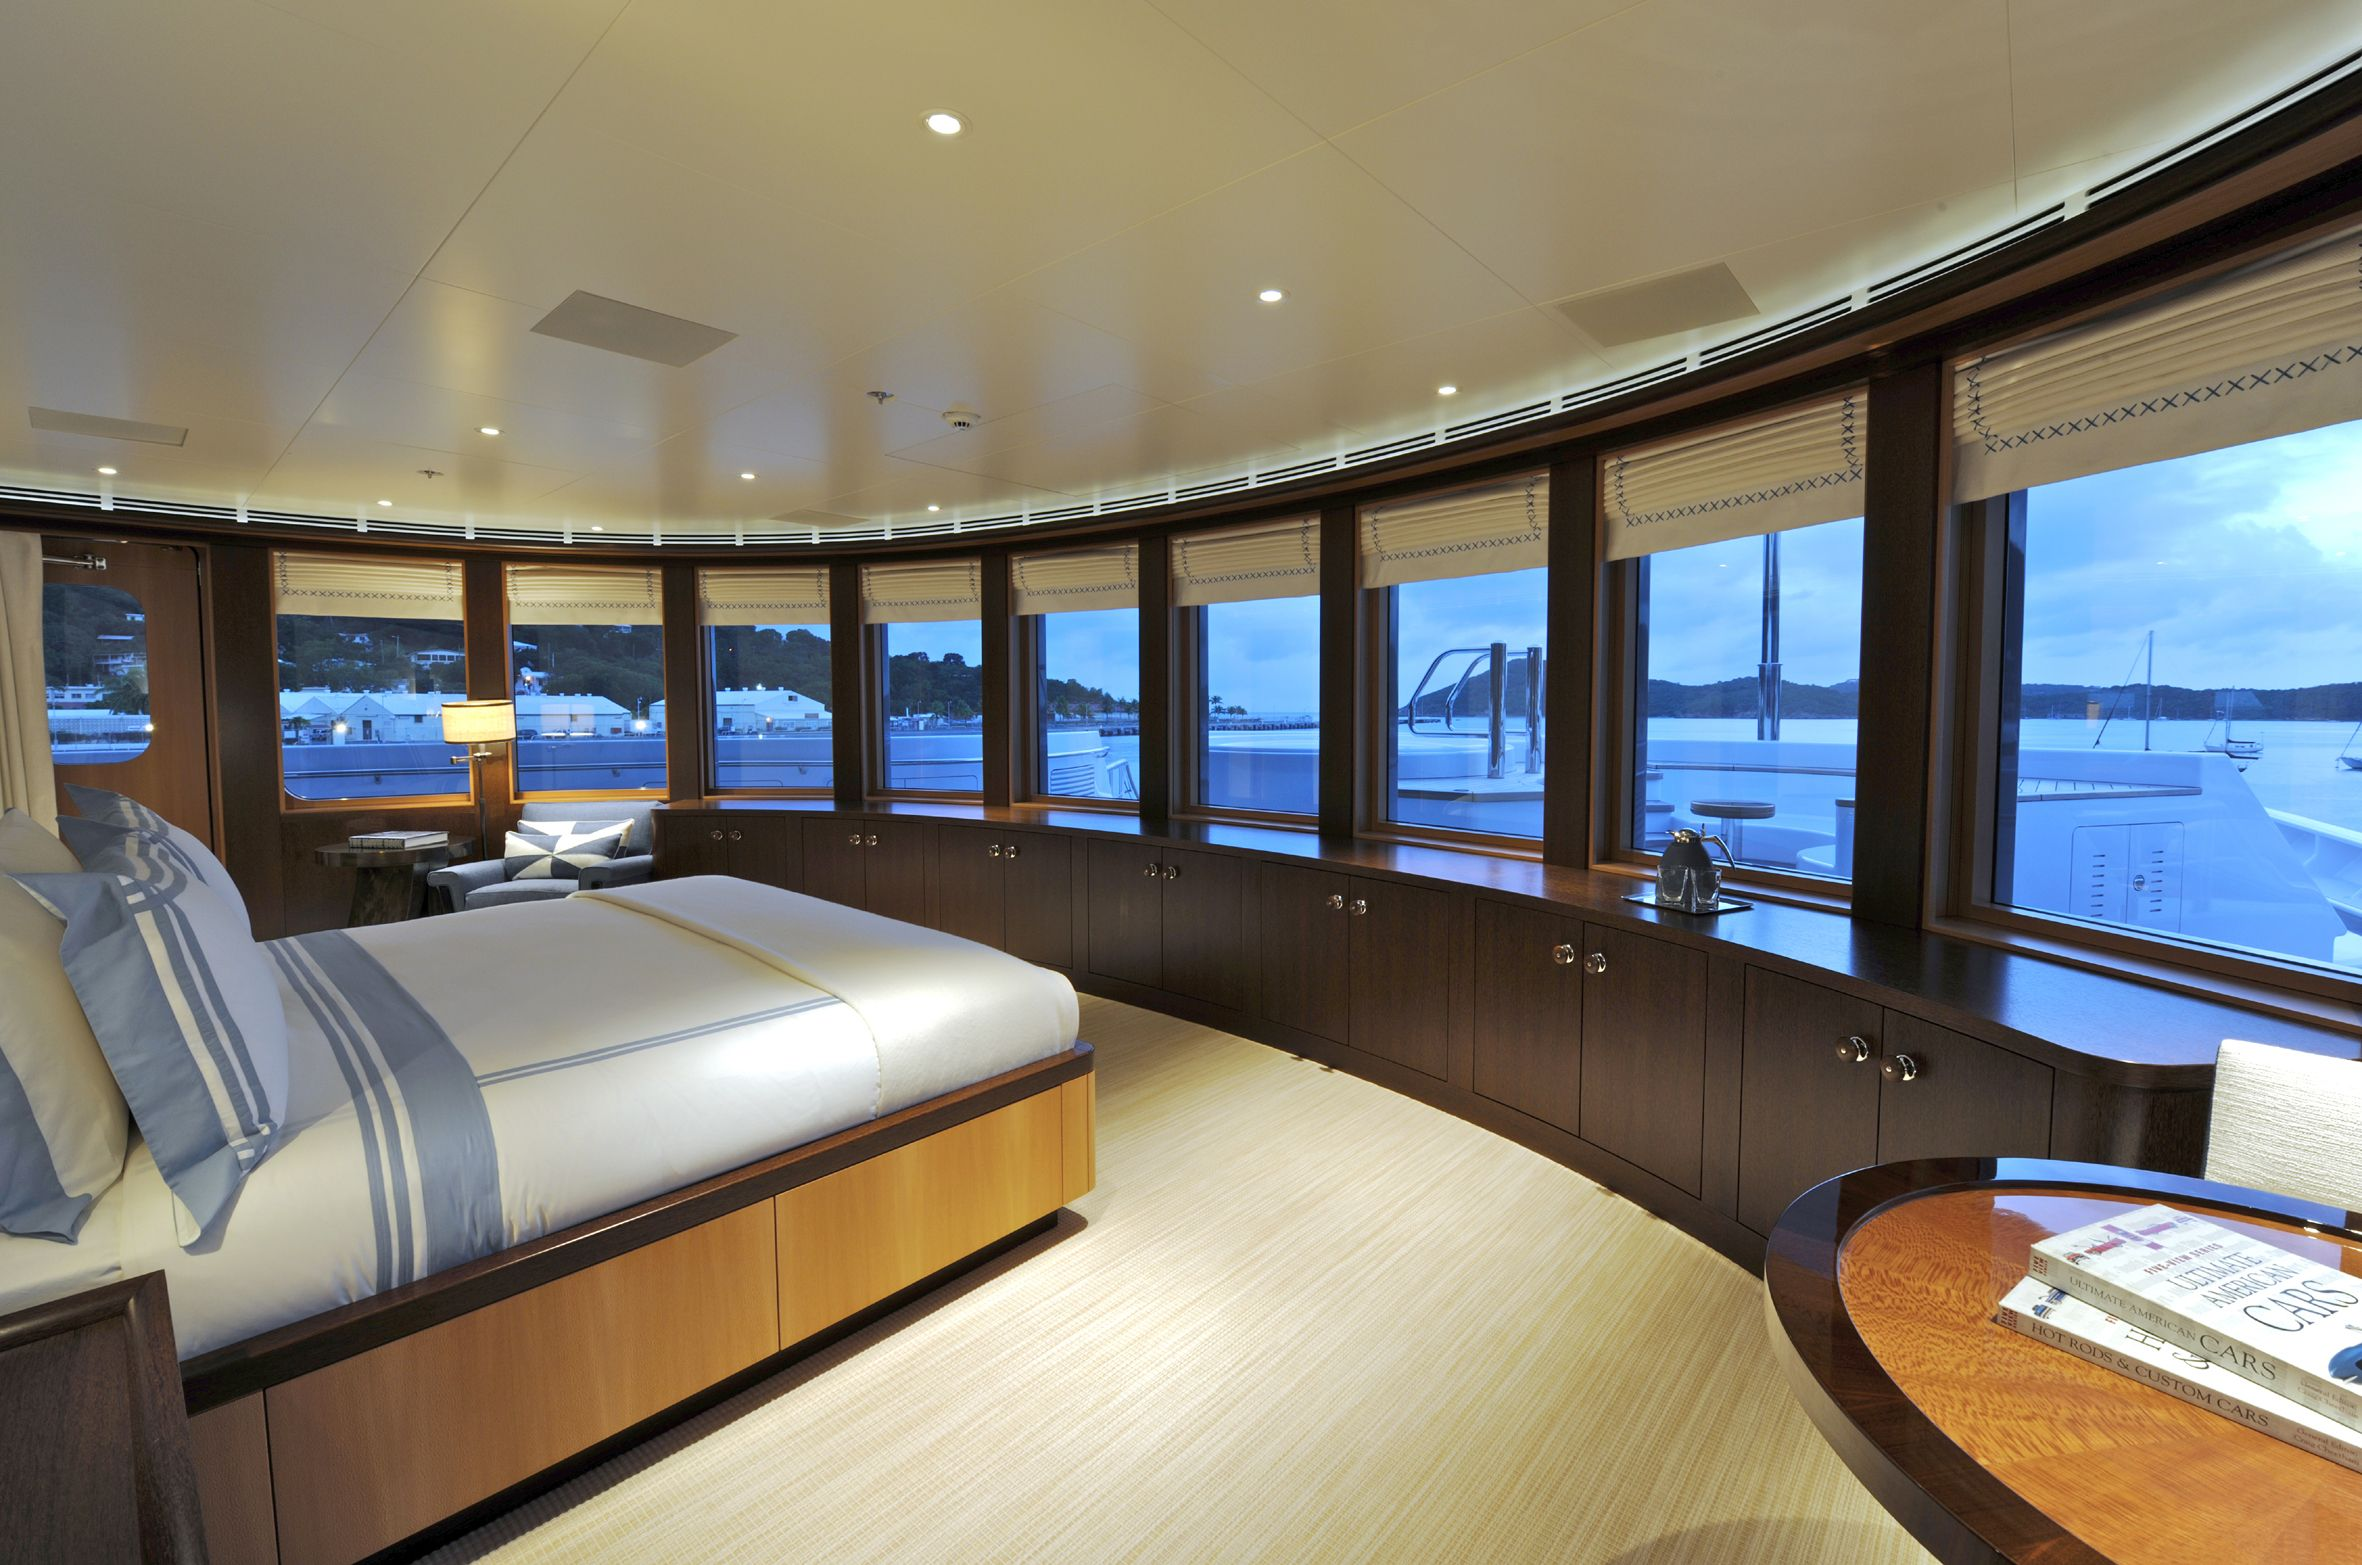 Inside Luxury Yachts Incredible Bedroom In An Incredible Luxury Yacht